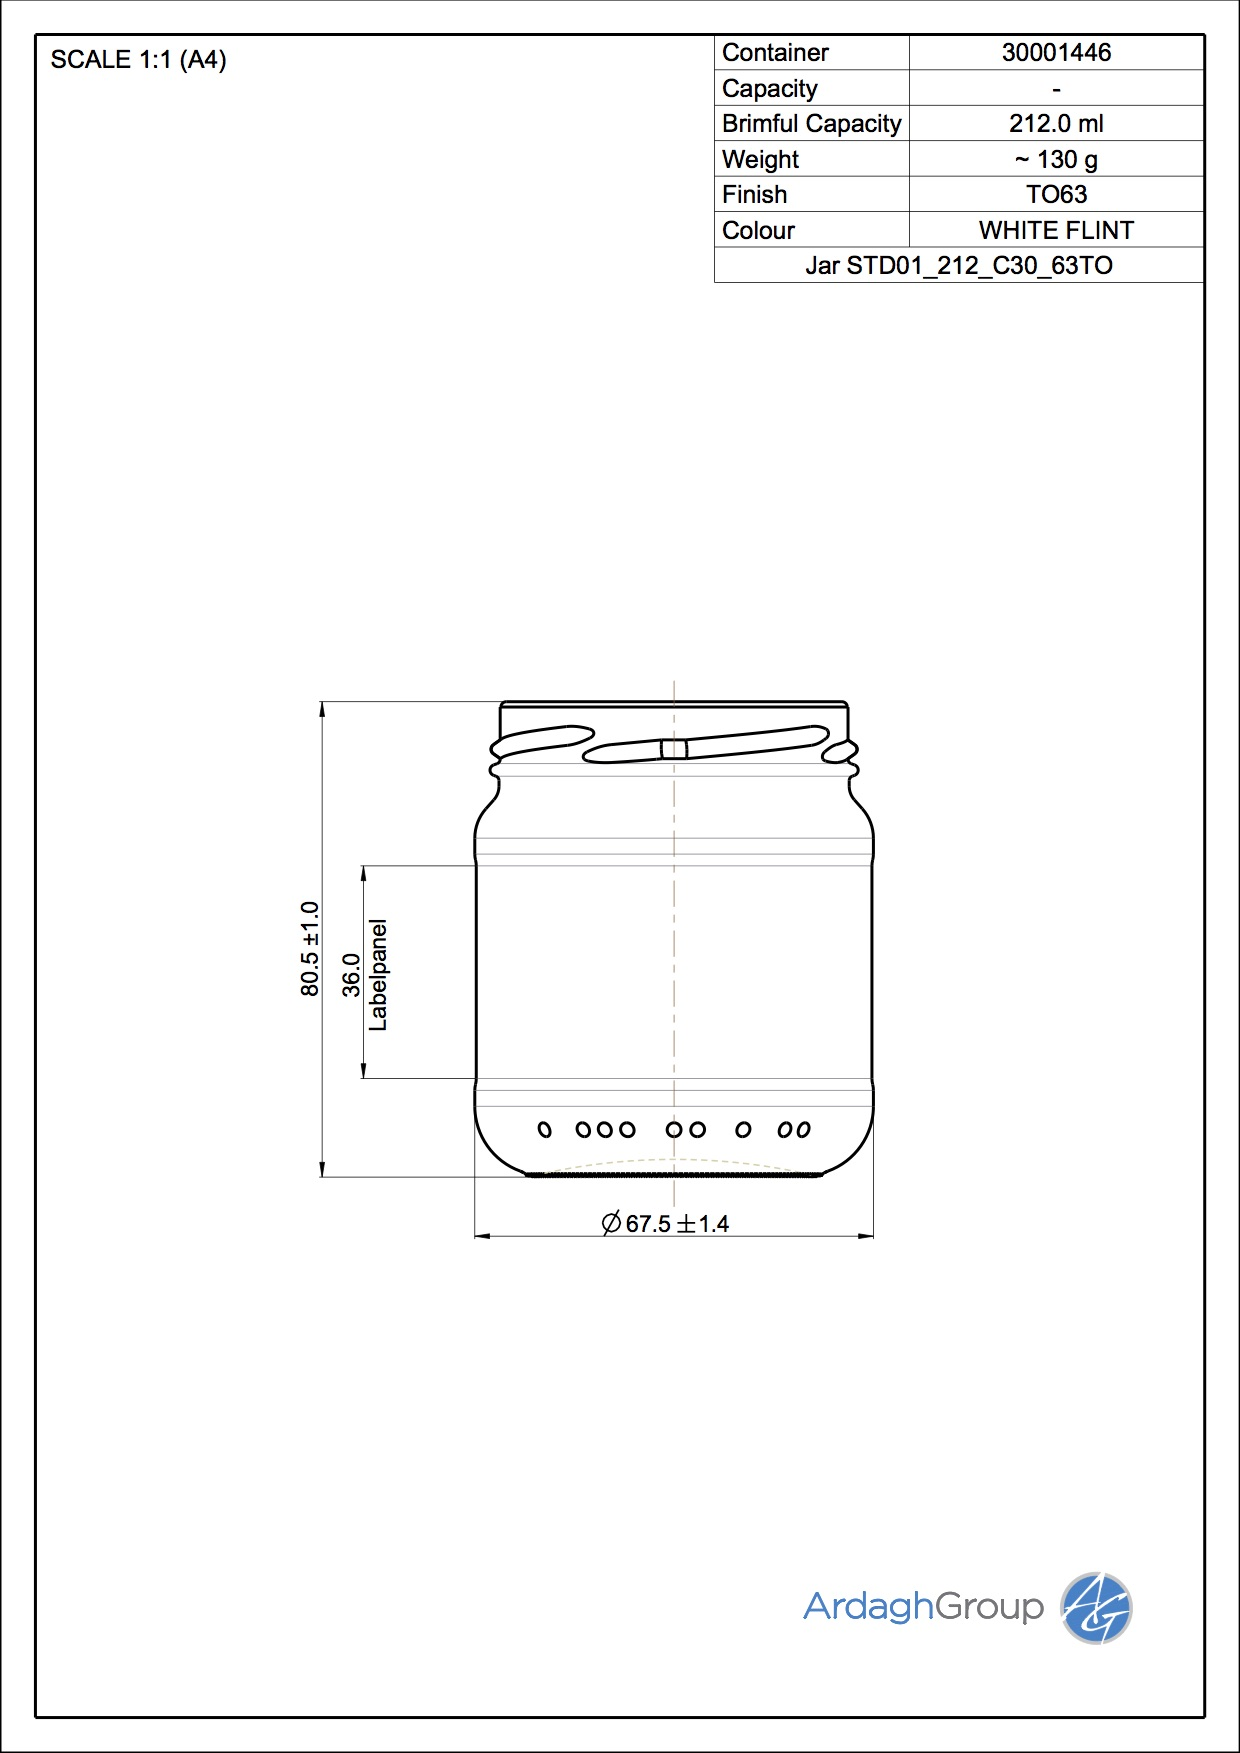 Jar STD01 212 C30 63TO